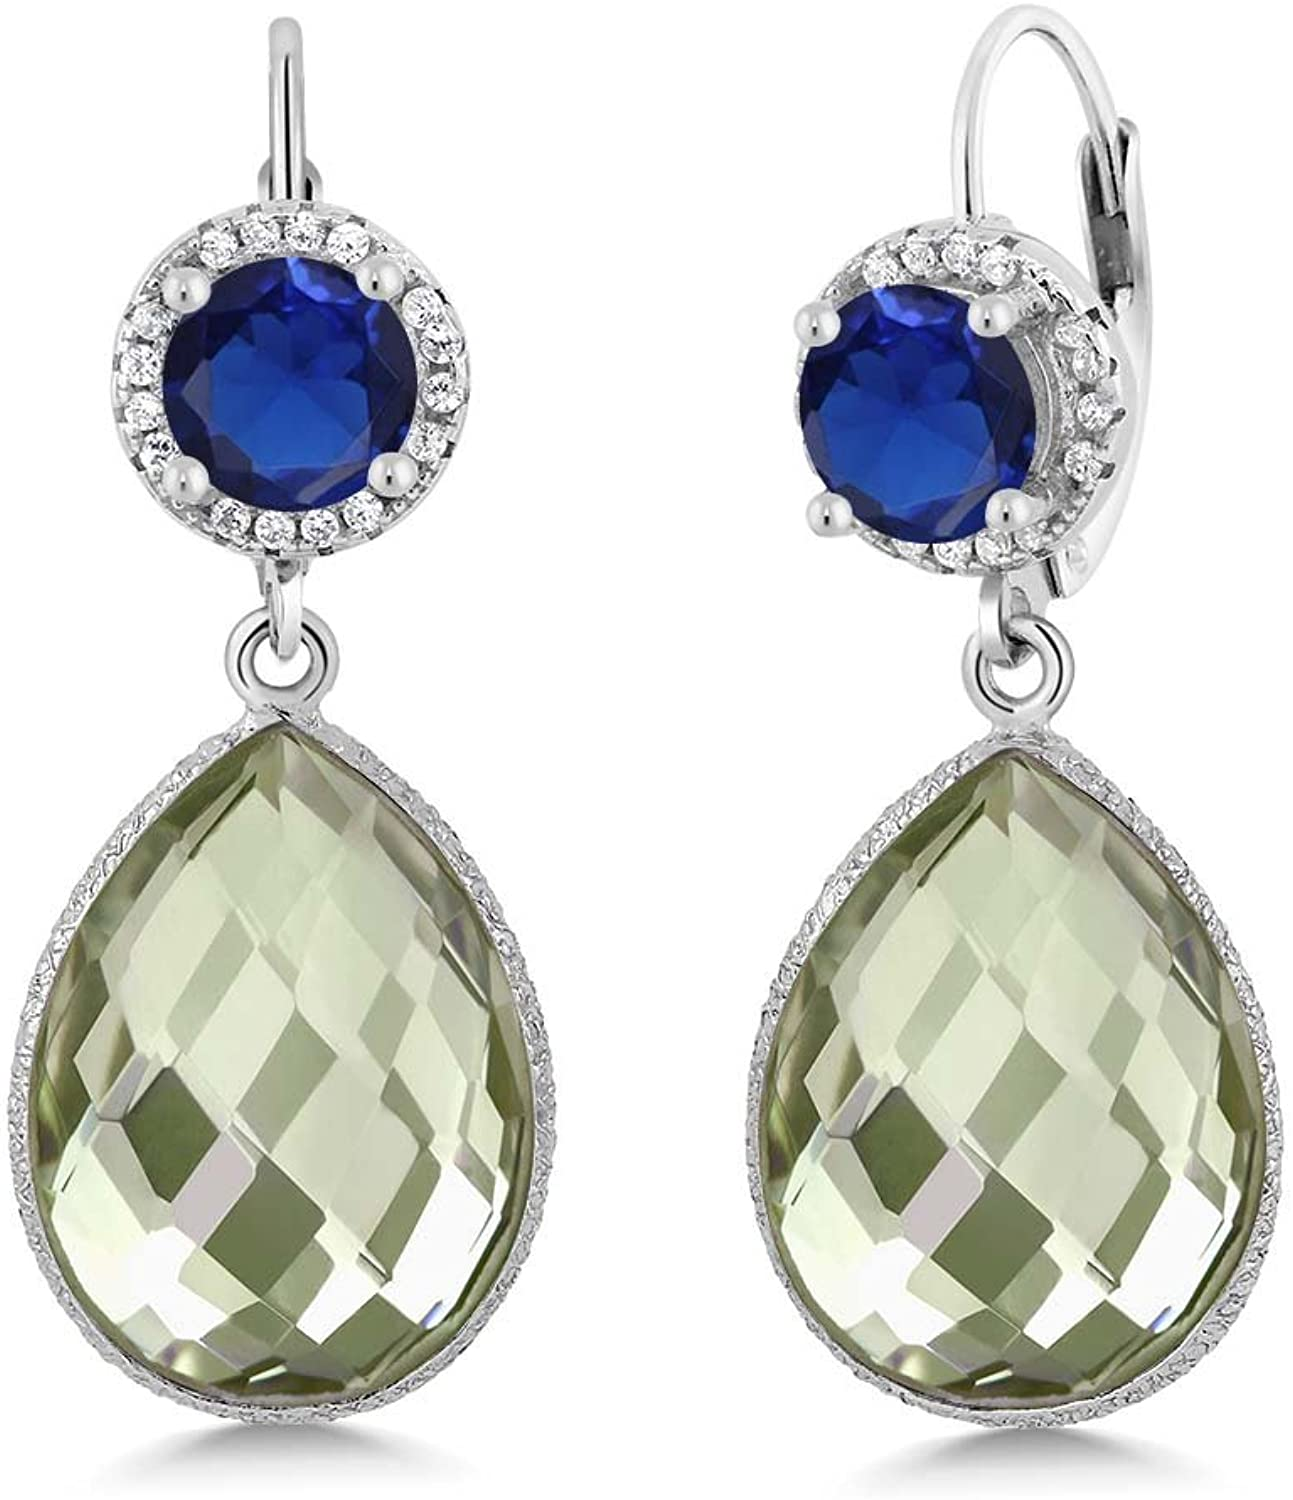 1.50 Ct Round bluee Simulated Sapphire Pear Amethyst 925 Sterling Silver Earrings